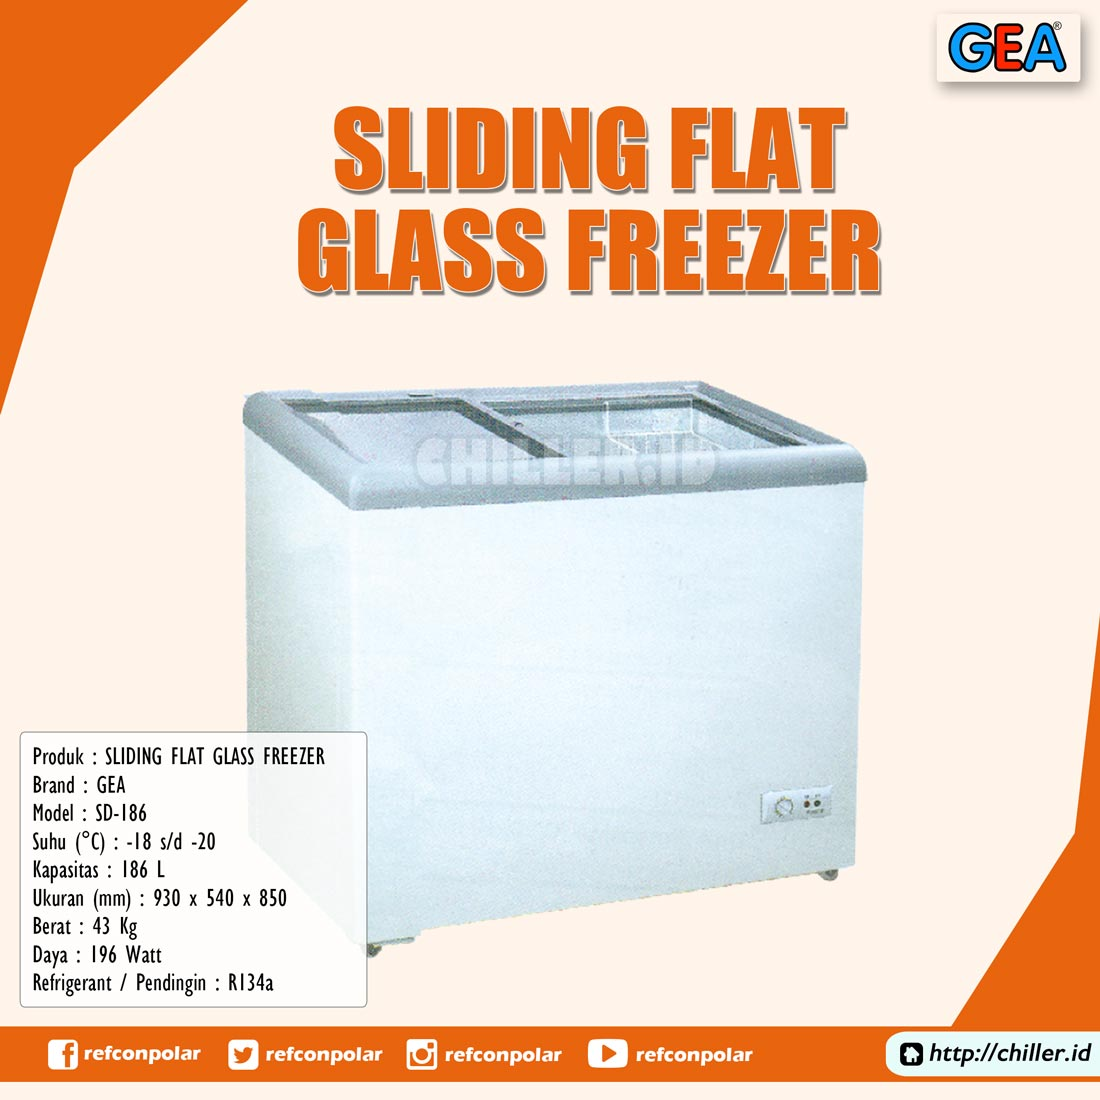 SD-186 GEA Sliding Flat Glass Freezer